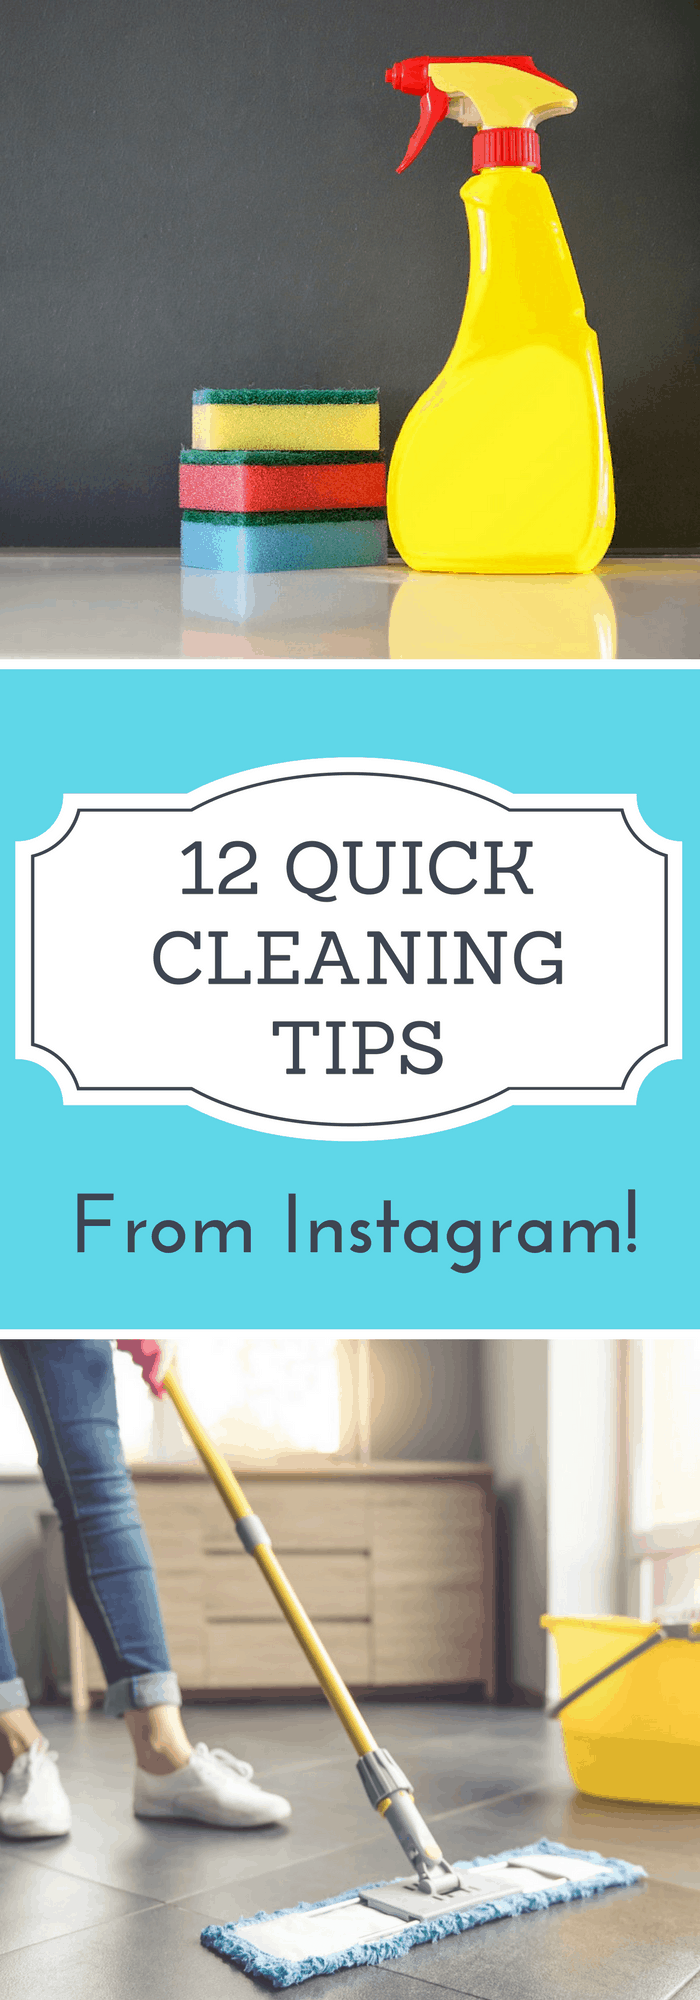 Cleaning--12 Quick Cleaning Tips from Instagram--The Organized Mom